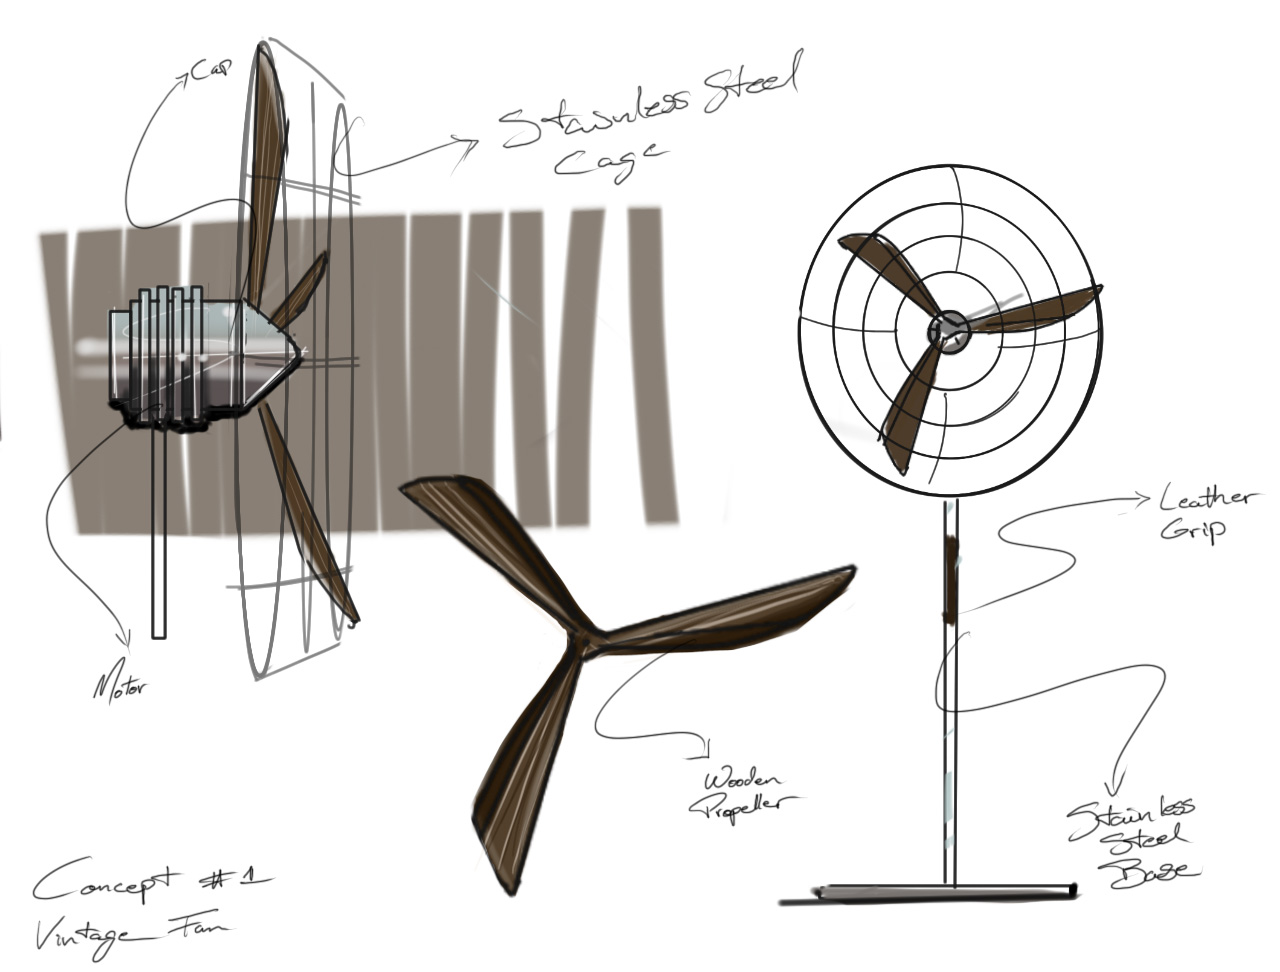 Early Concept Sketch